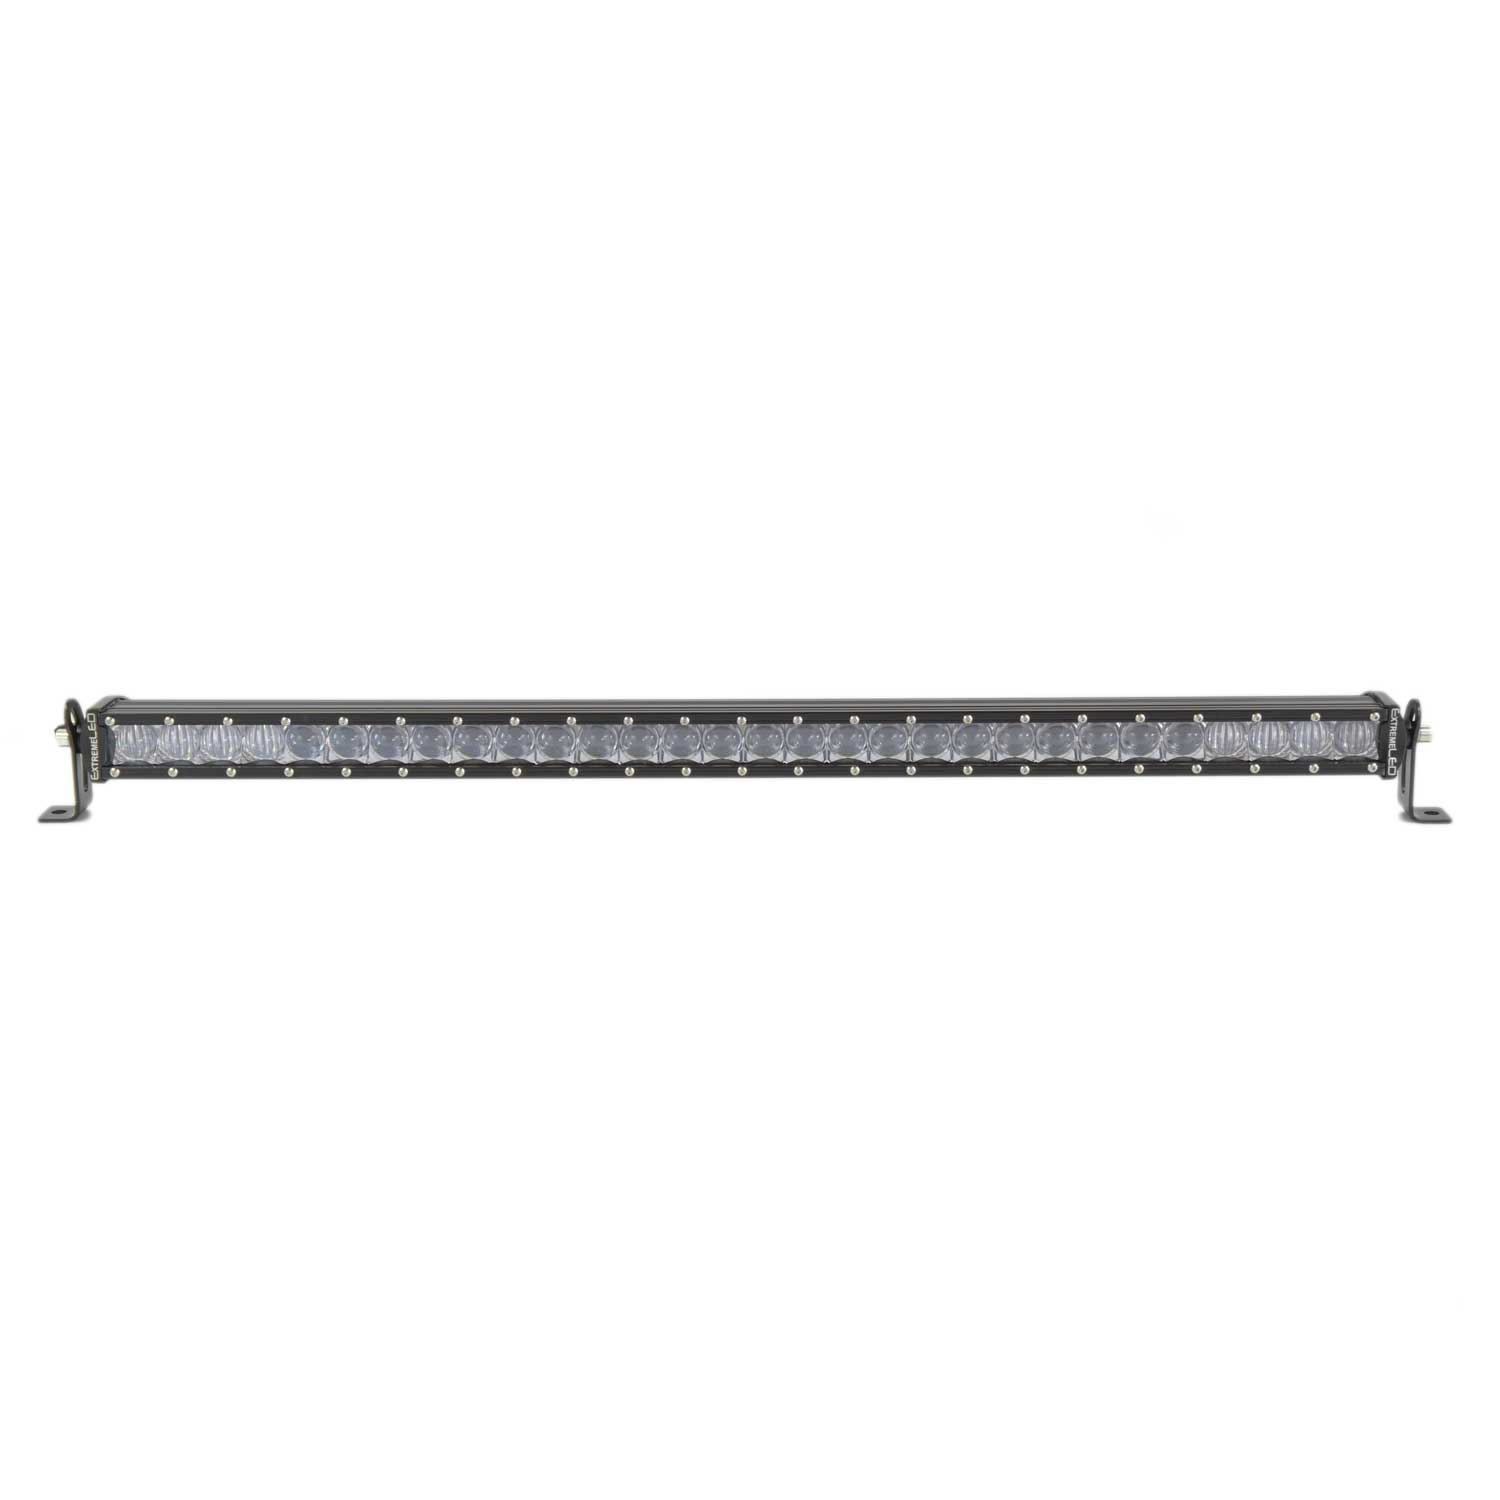 "Extreme 5D 40"" Single Row LED Light Bar"